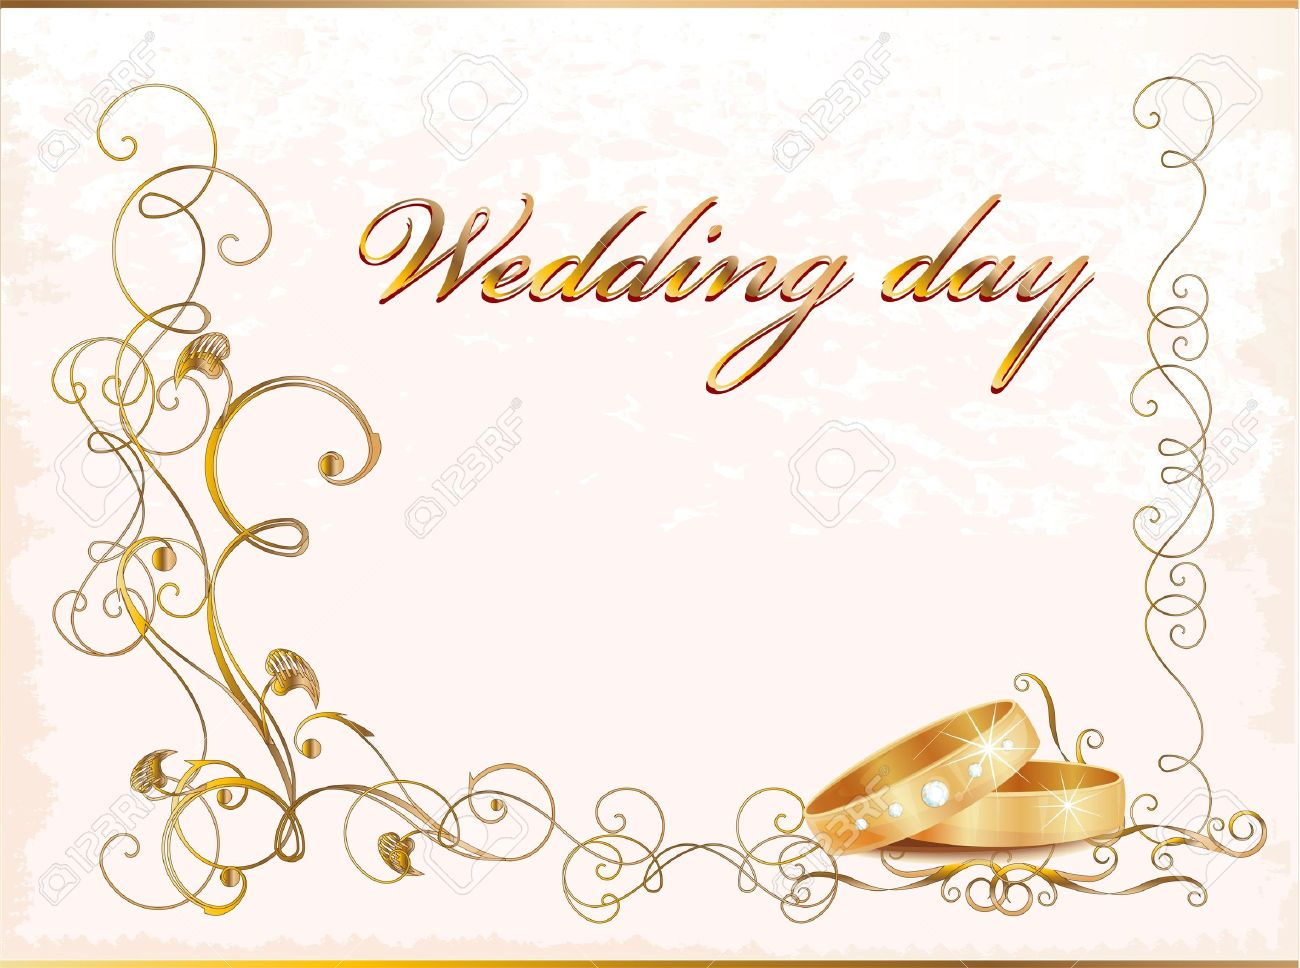 1300x968 Wedding Card Frame Vector Unique Vintage Wedding Card With Rings